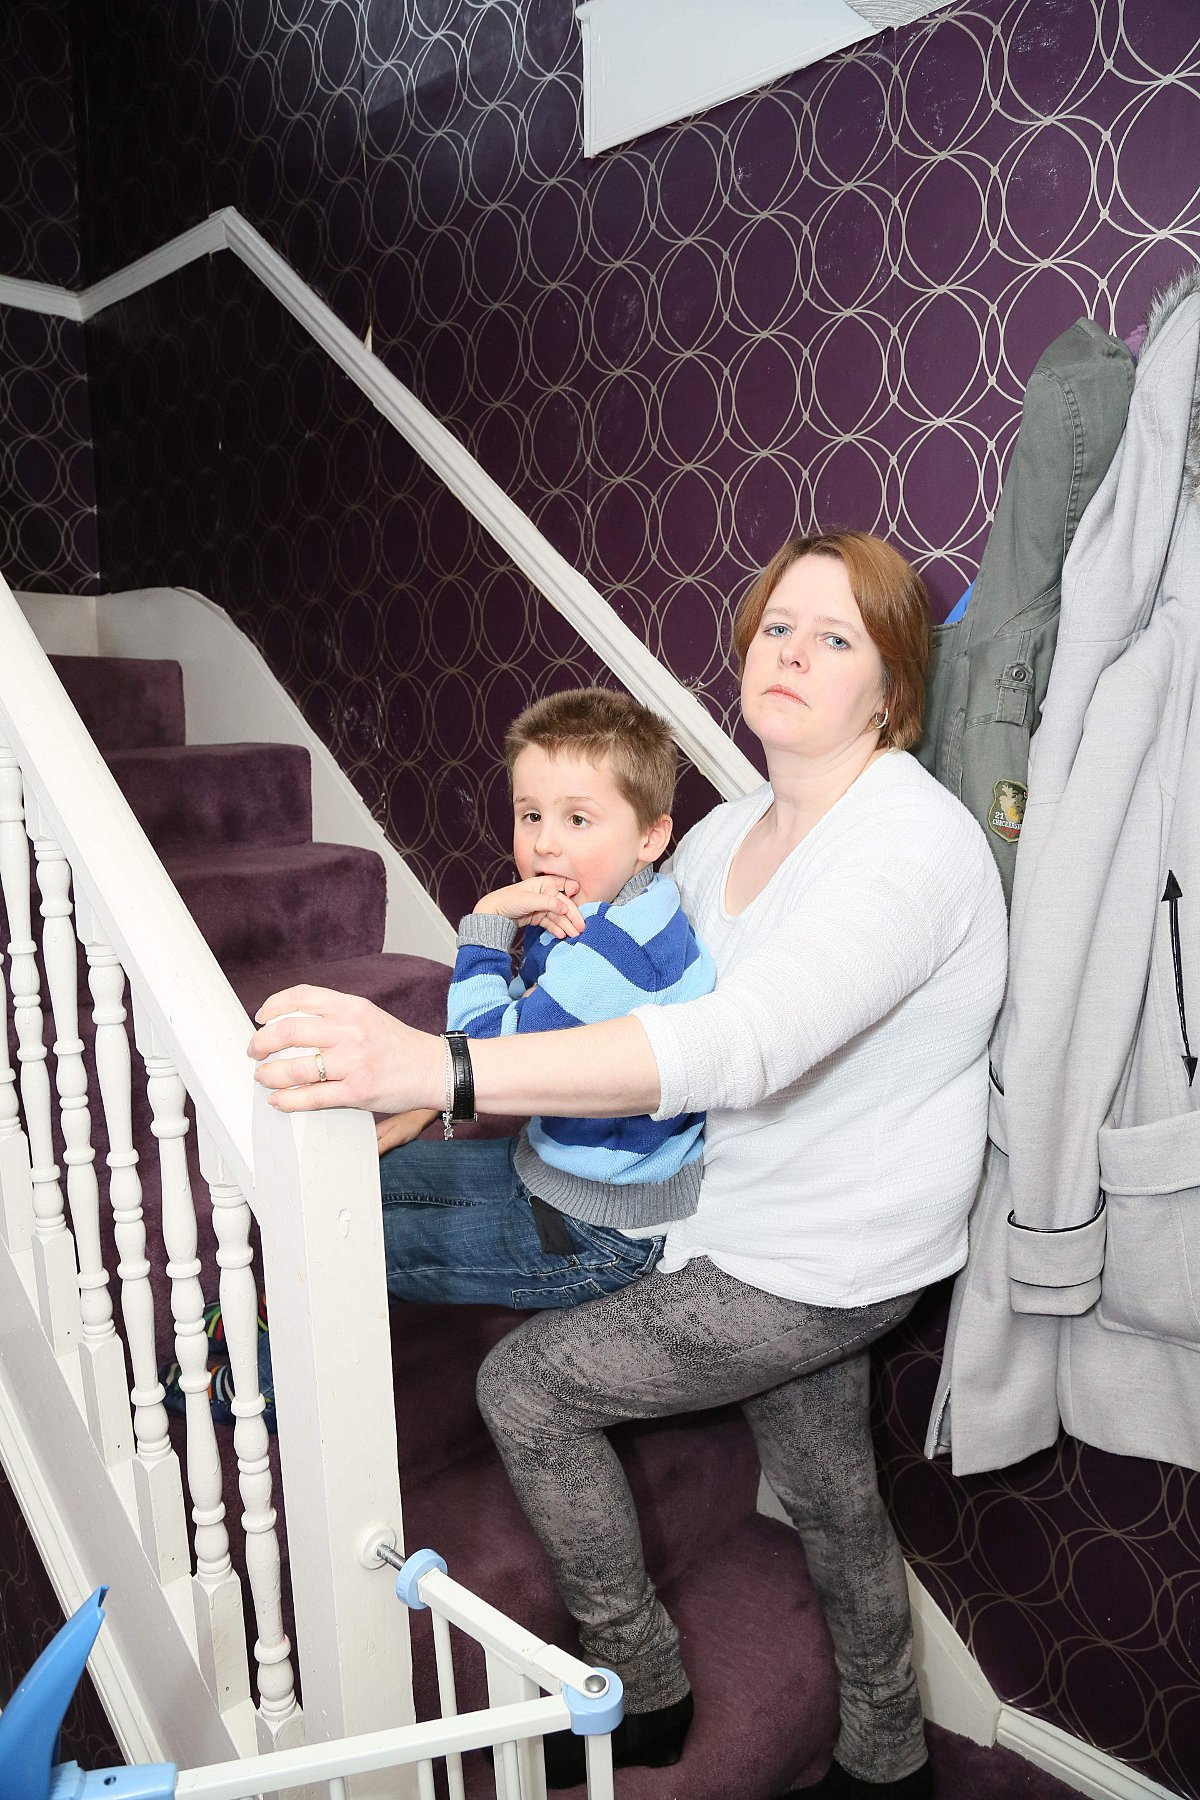 Mum despairs as Bexley Council offer extension for disabled boy but no stair lift